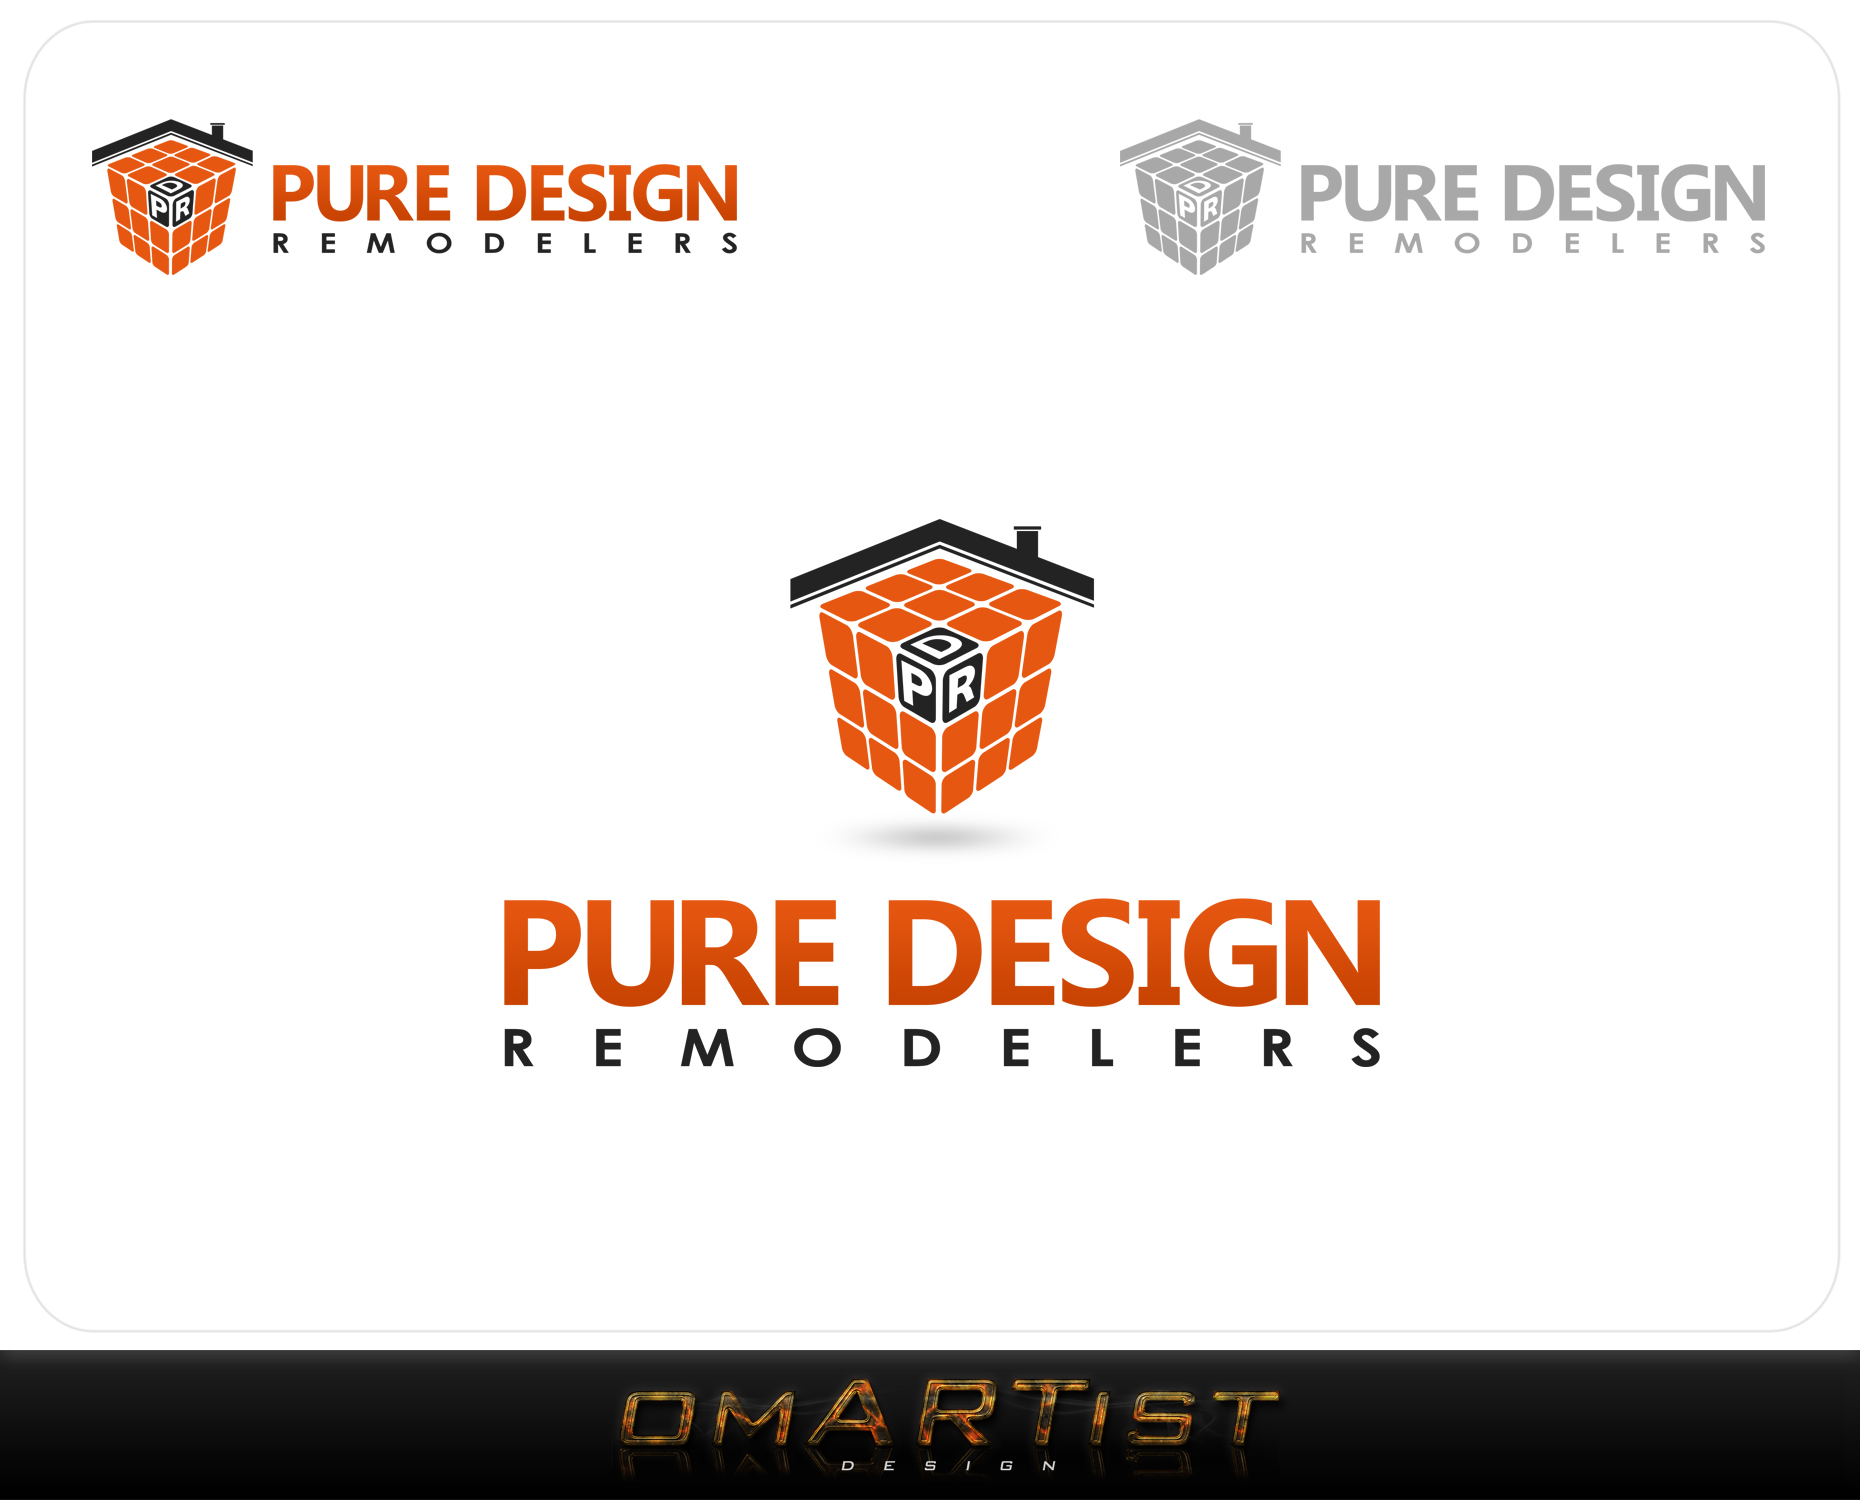 Logo Design by omARTist - Entry No. 49 in the Logo Design Contest Custom Logo Design for Pure Design Remodelers.